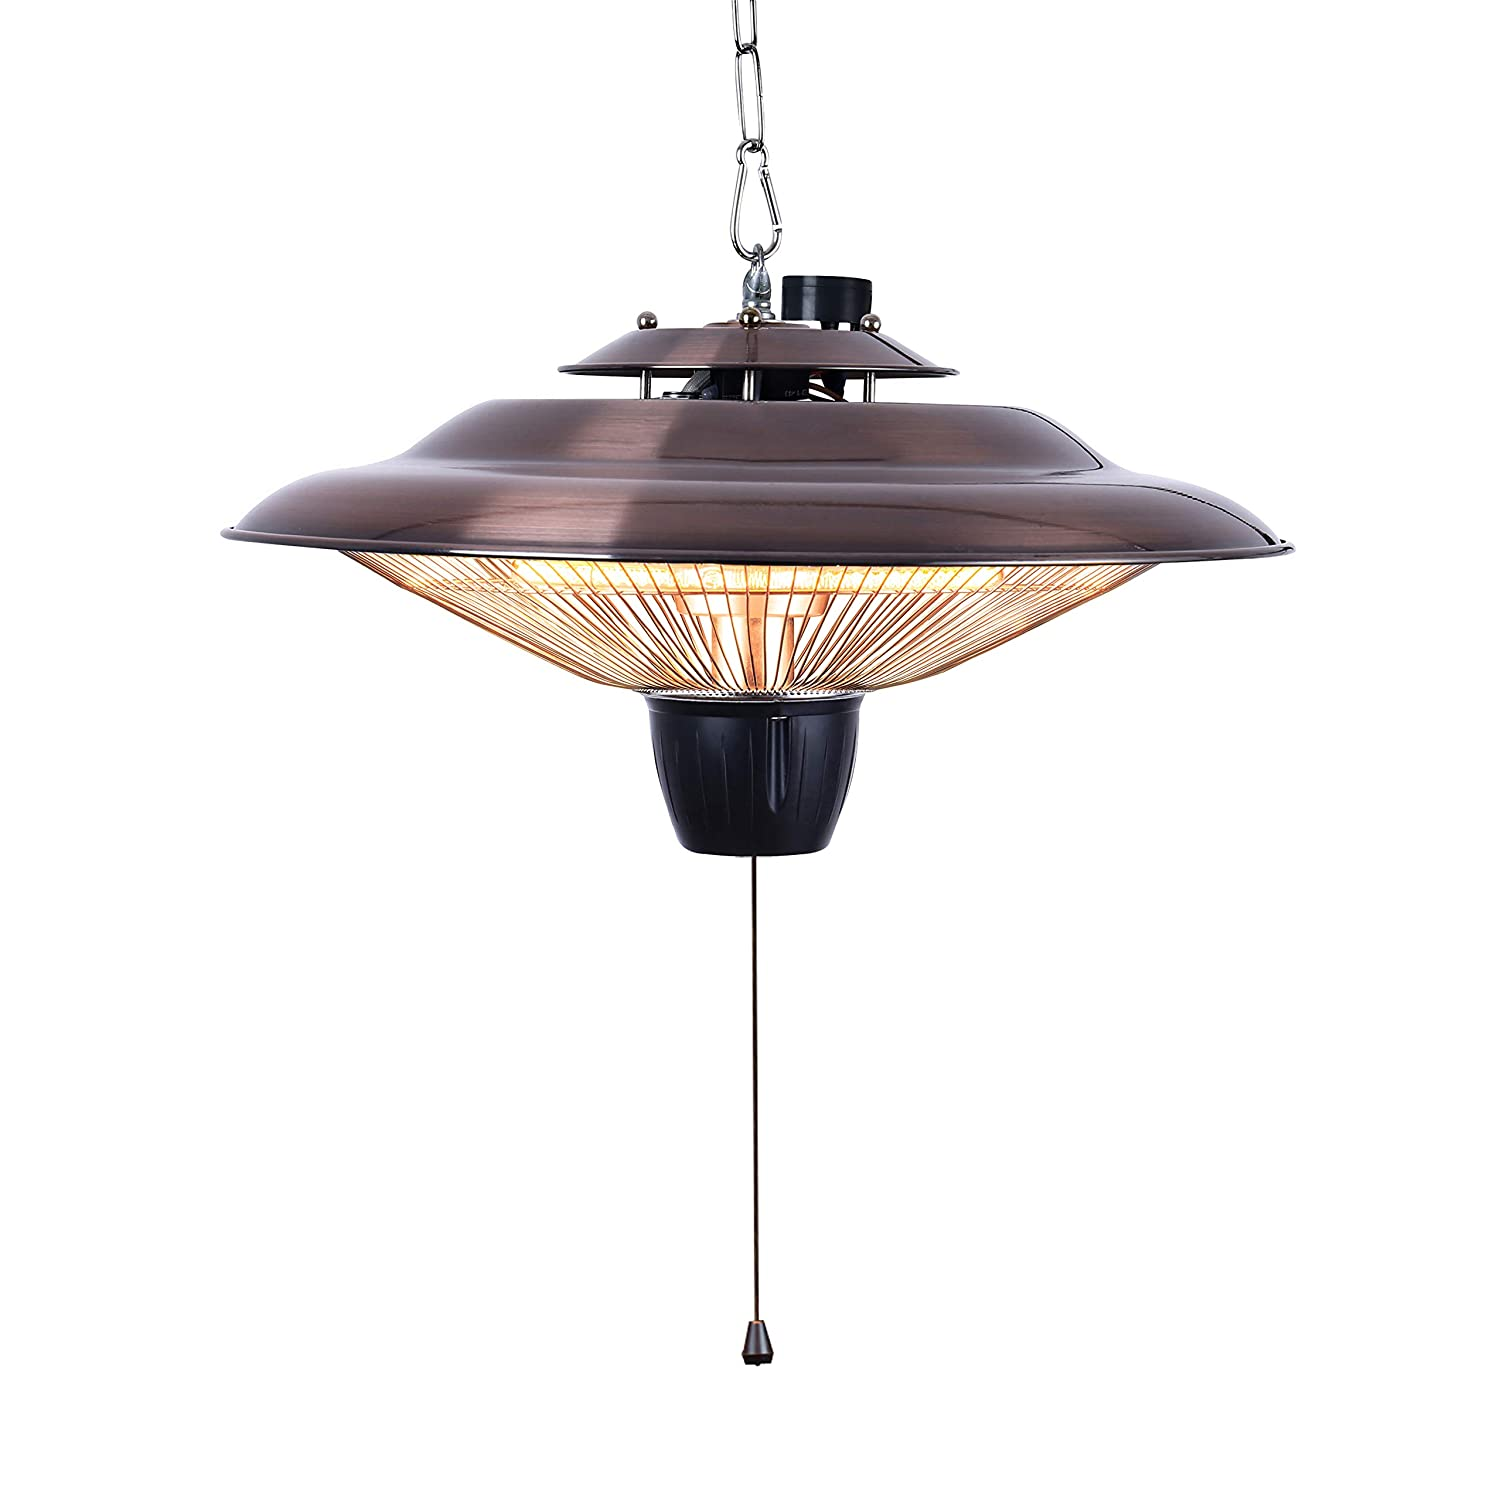 DONYER POWER 2000W Electrical Patio Heater Outdoor or Indoor Use Ceiling Mounted